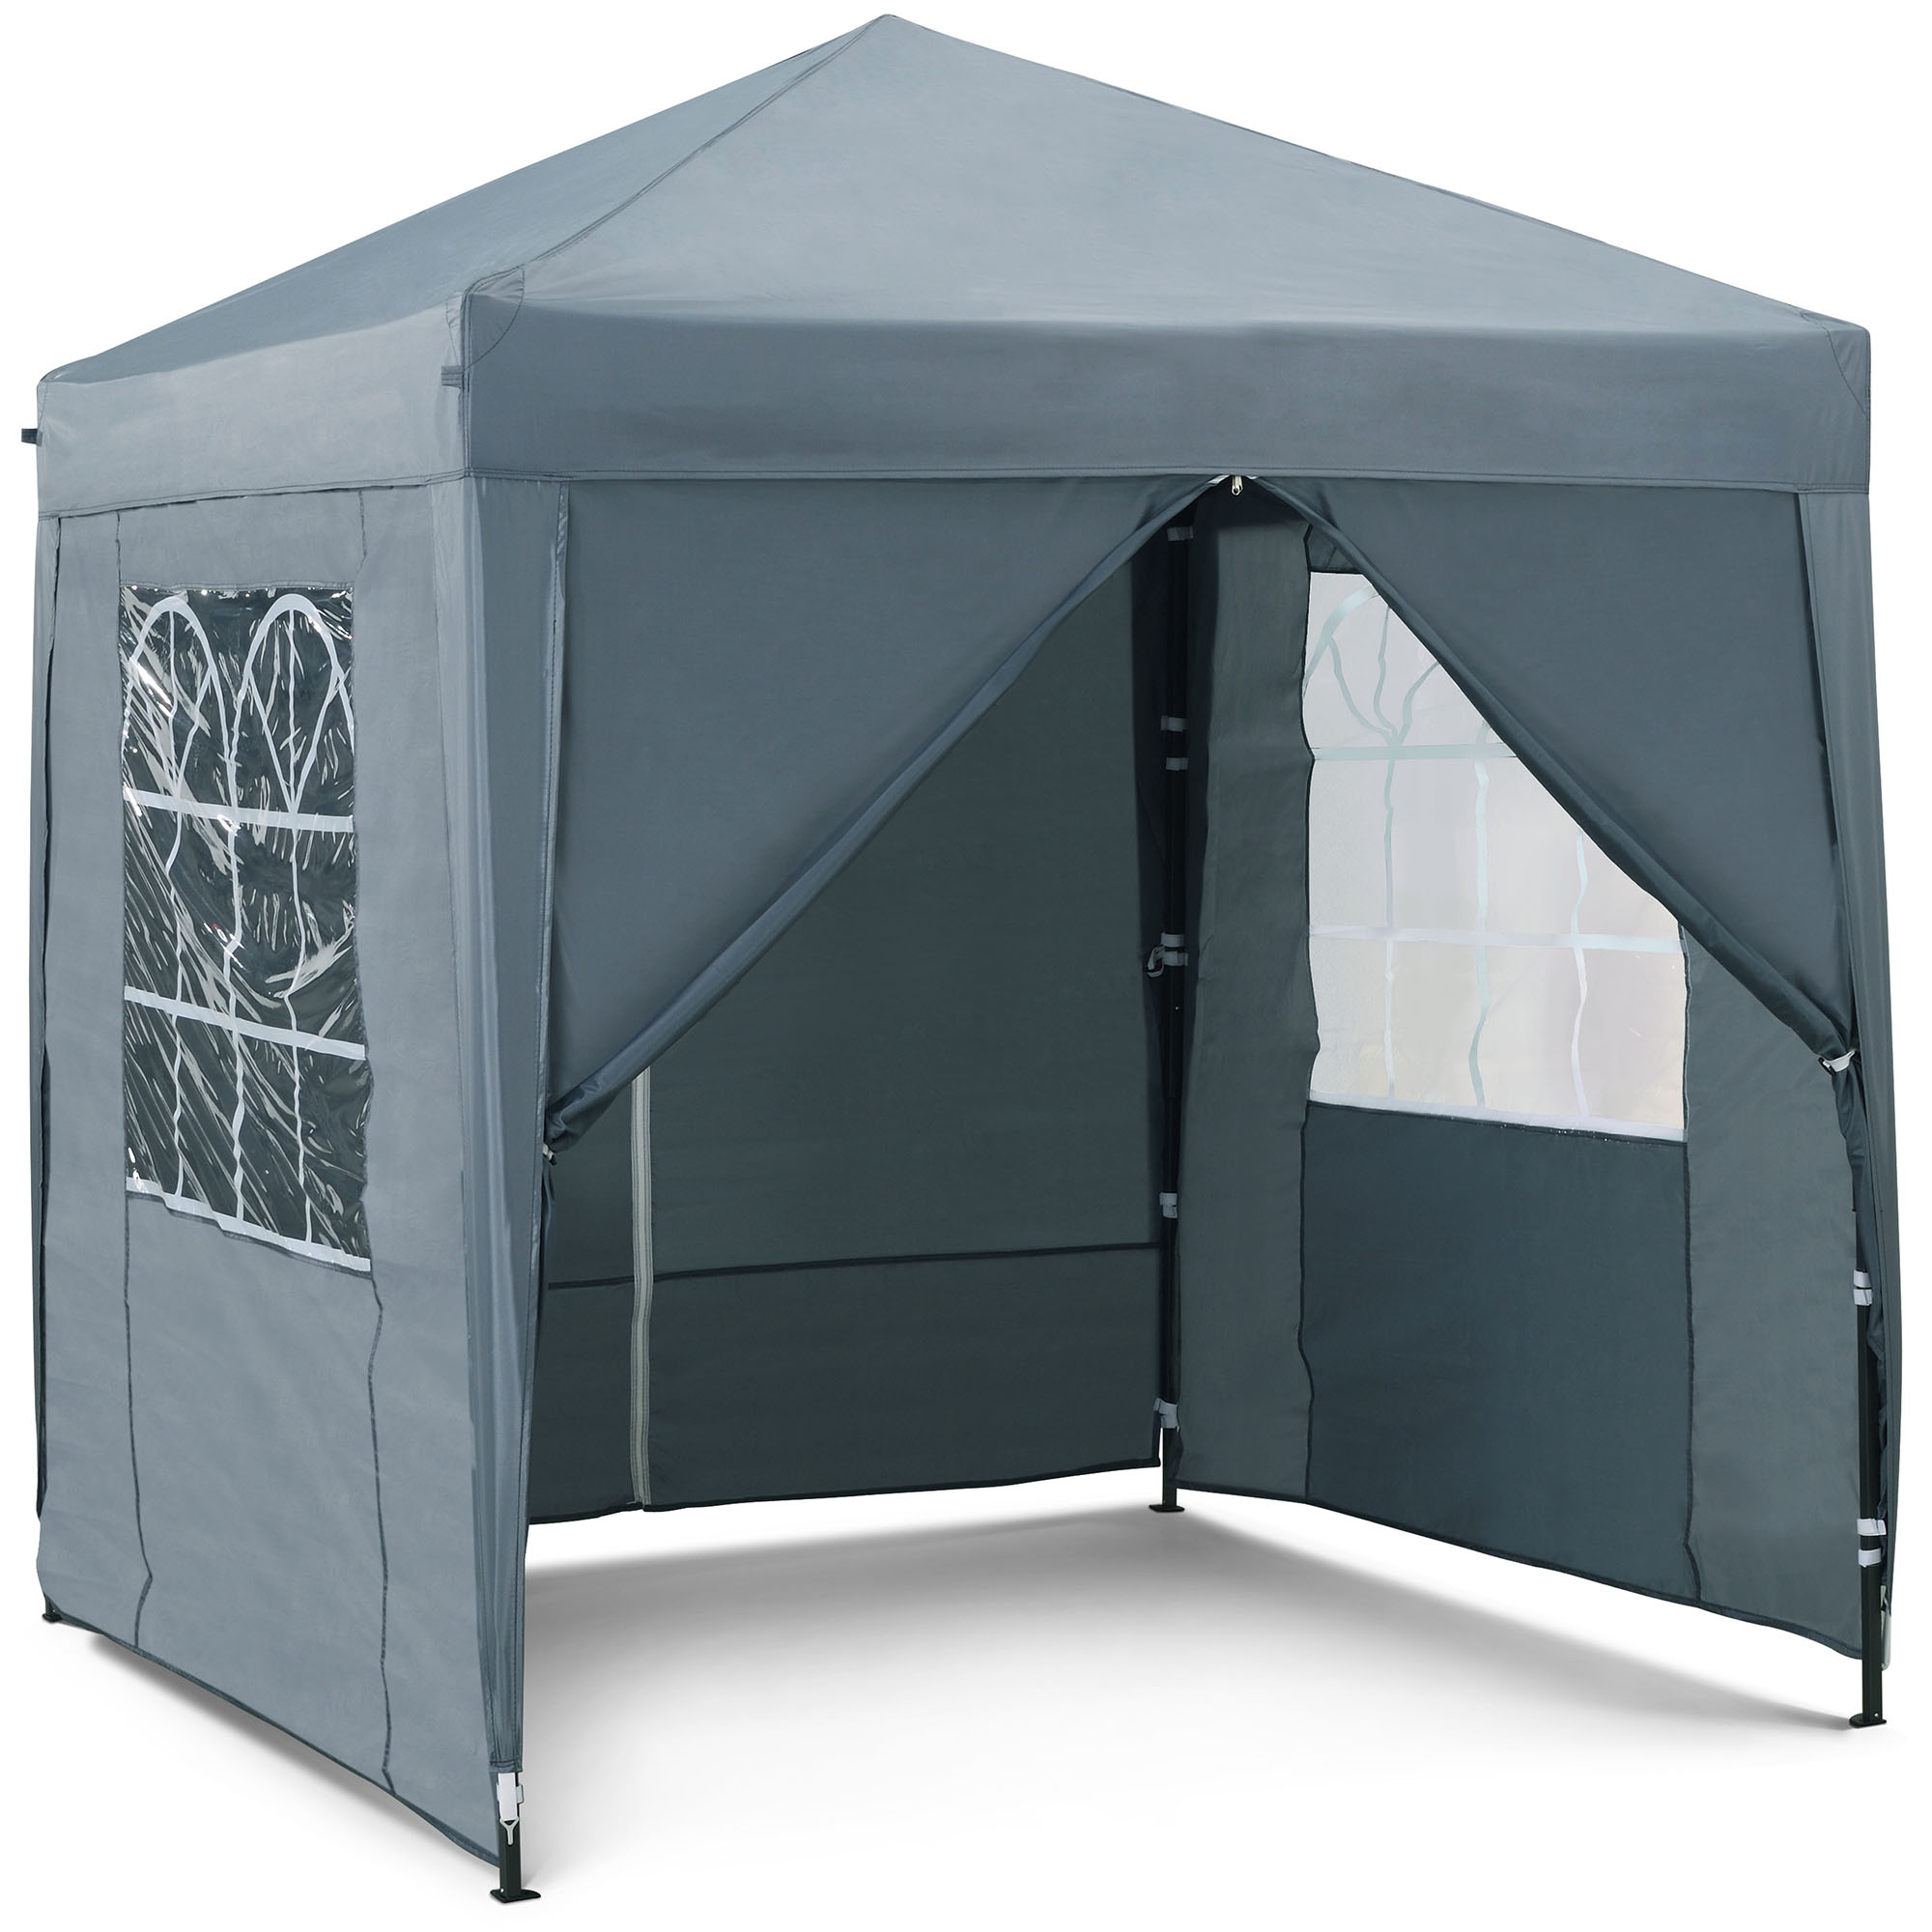 VonHaus 2M X 2M Pop Up Gazebo